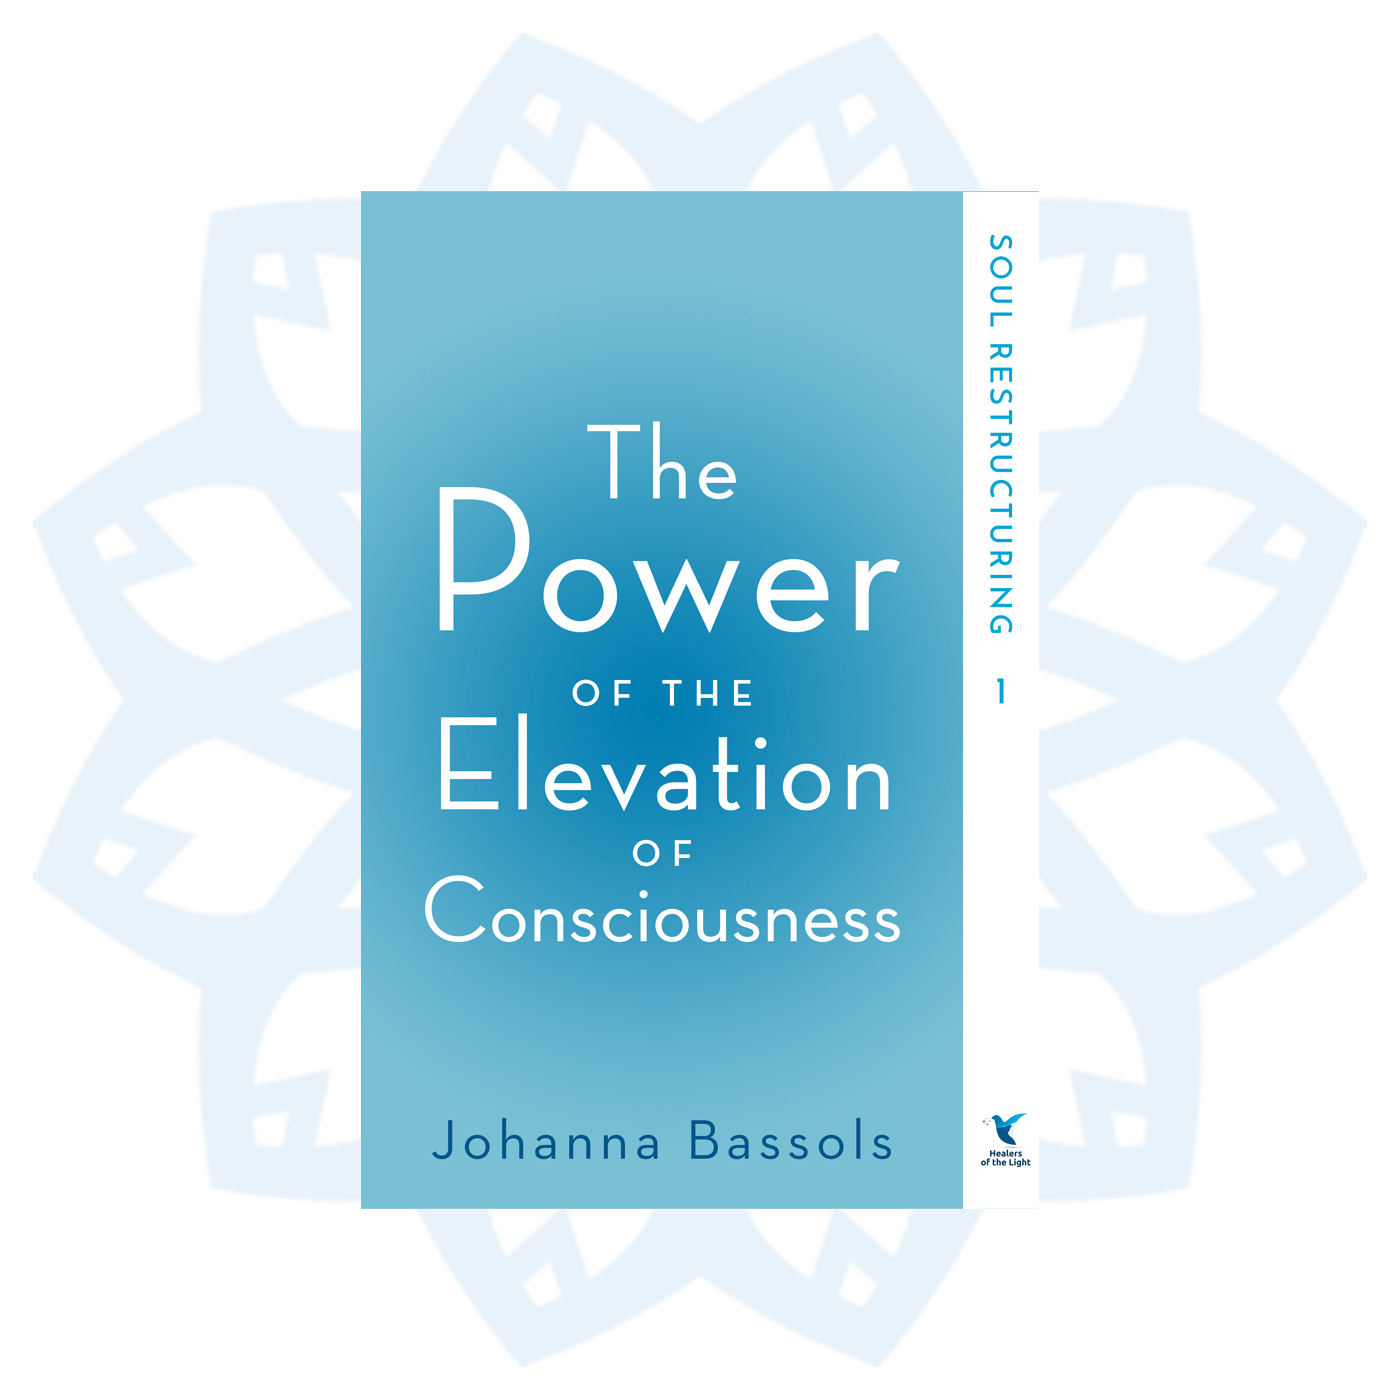 Trilogy Paperback: The Power of the Elevation of Consciousness